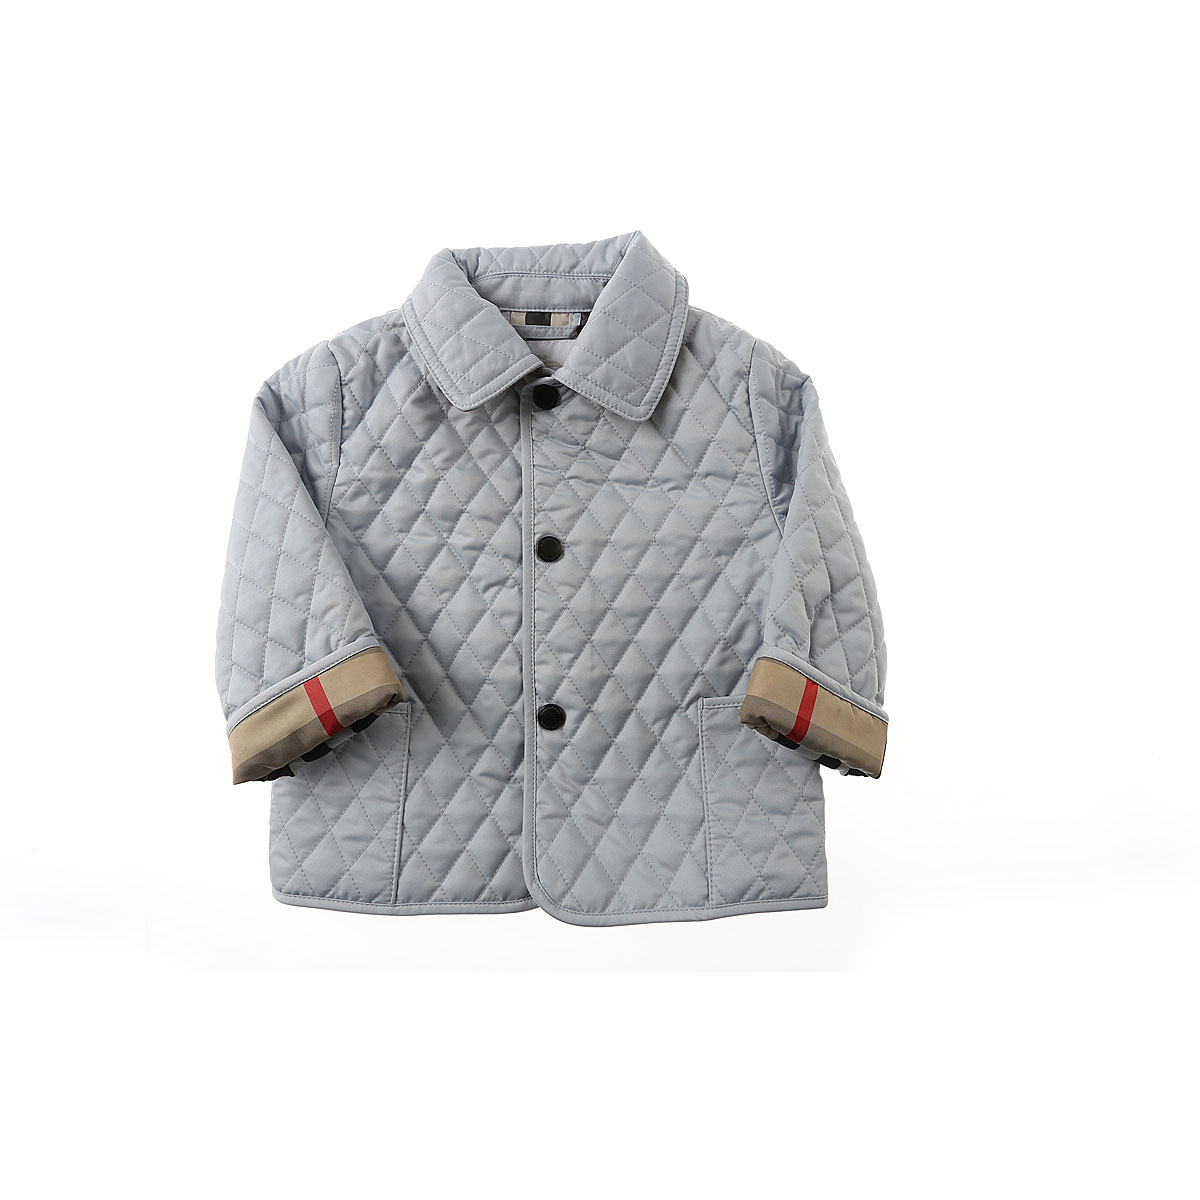 Image of Burberry Baby Jacket for Boys, Skyblue, polyester, 2017, 12M 18M 6M